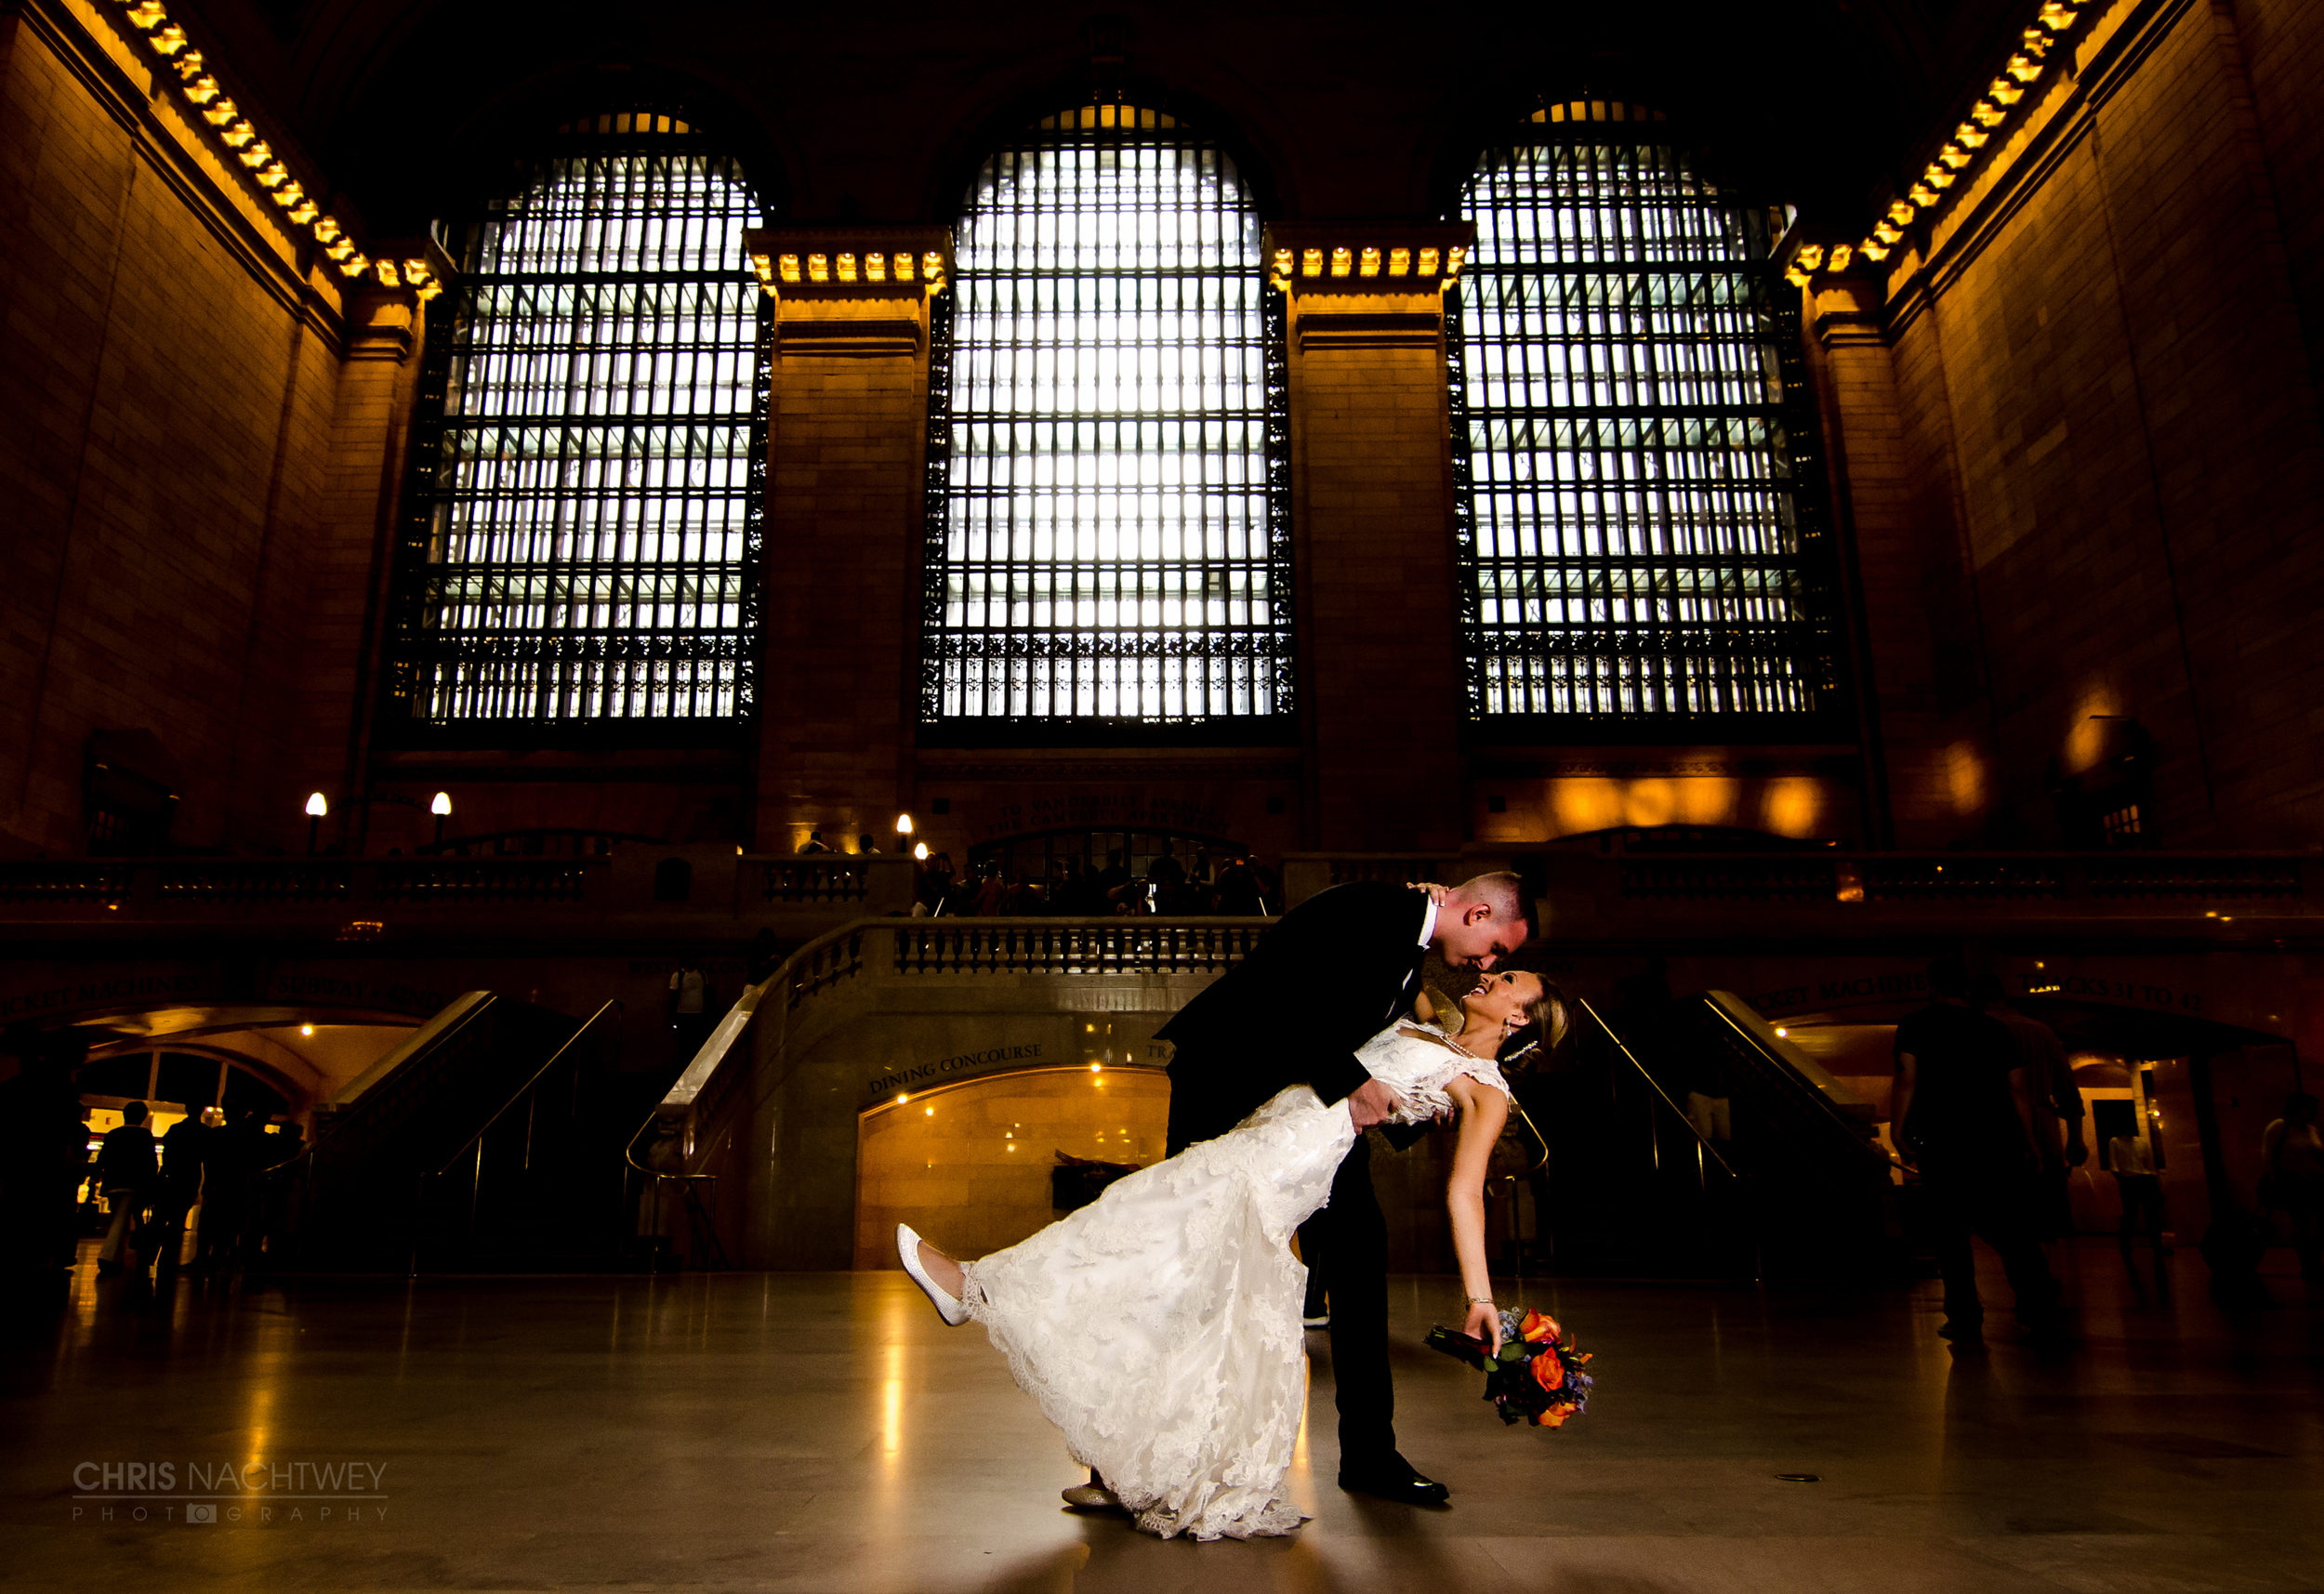 grand-central-station-wedding-photos-new-york-chris-nachtwey.jpg